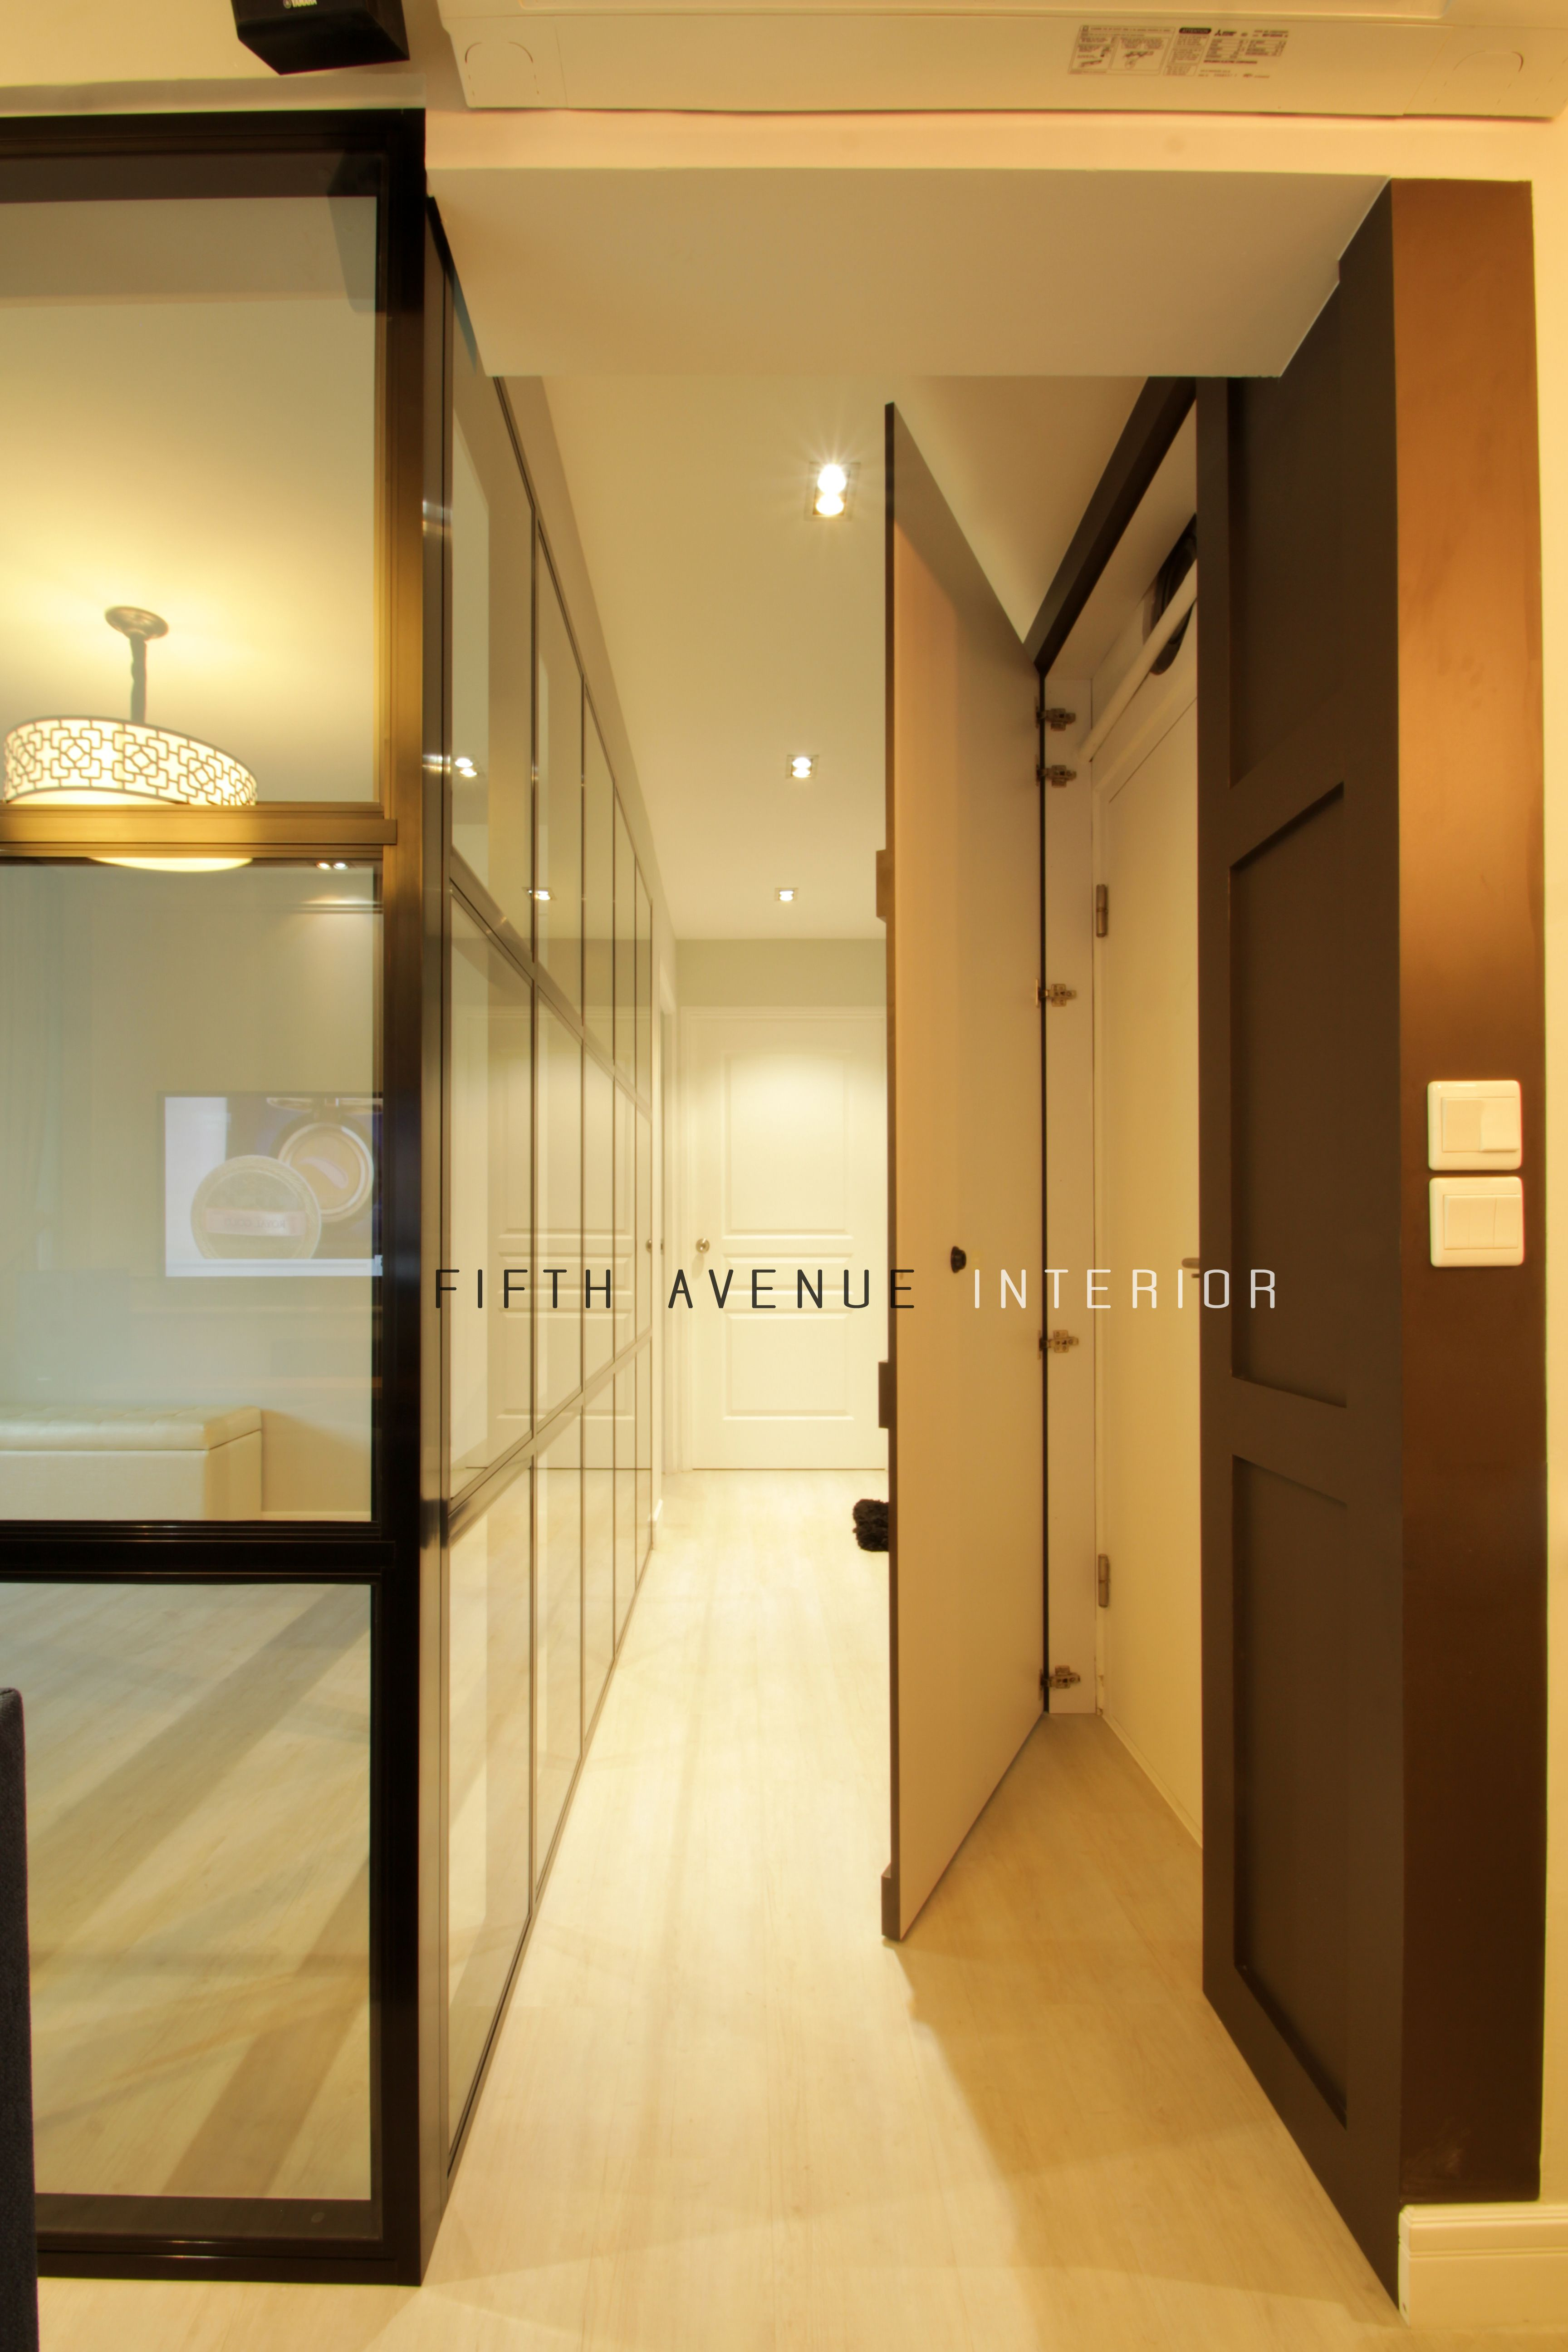 Best Free 3d Room Design Software: Pin By Fifth Avenue Interior On HDB